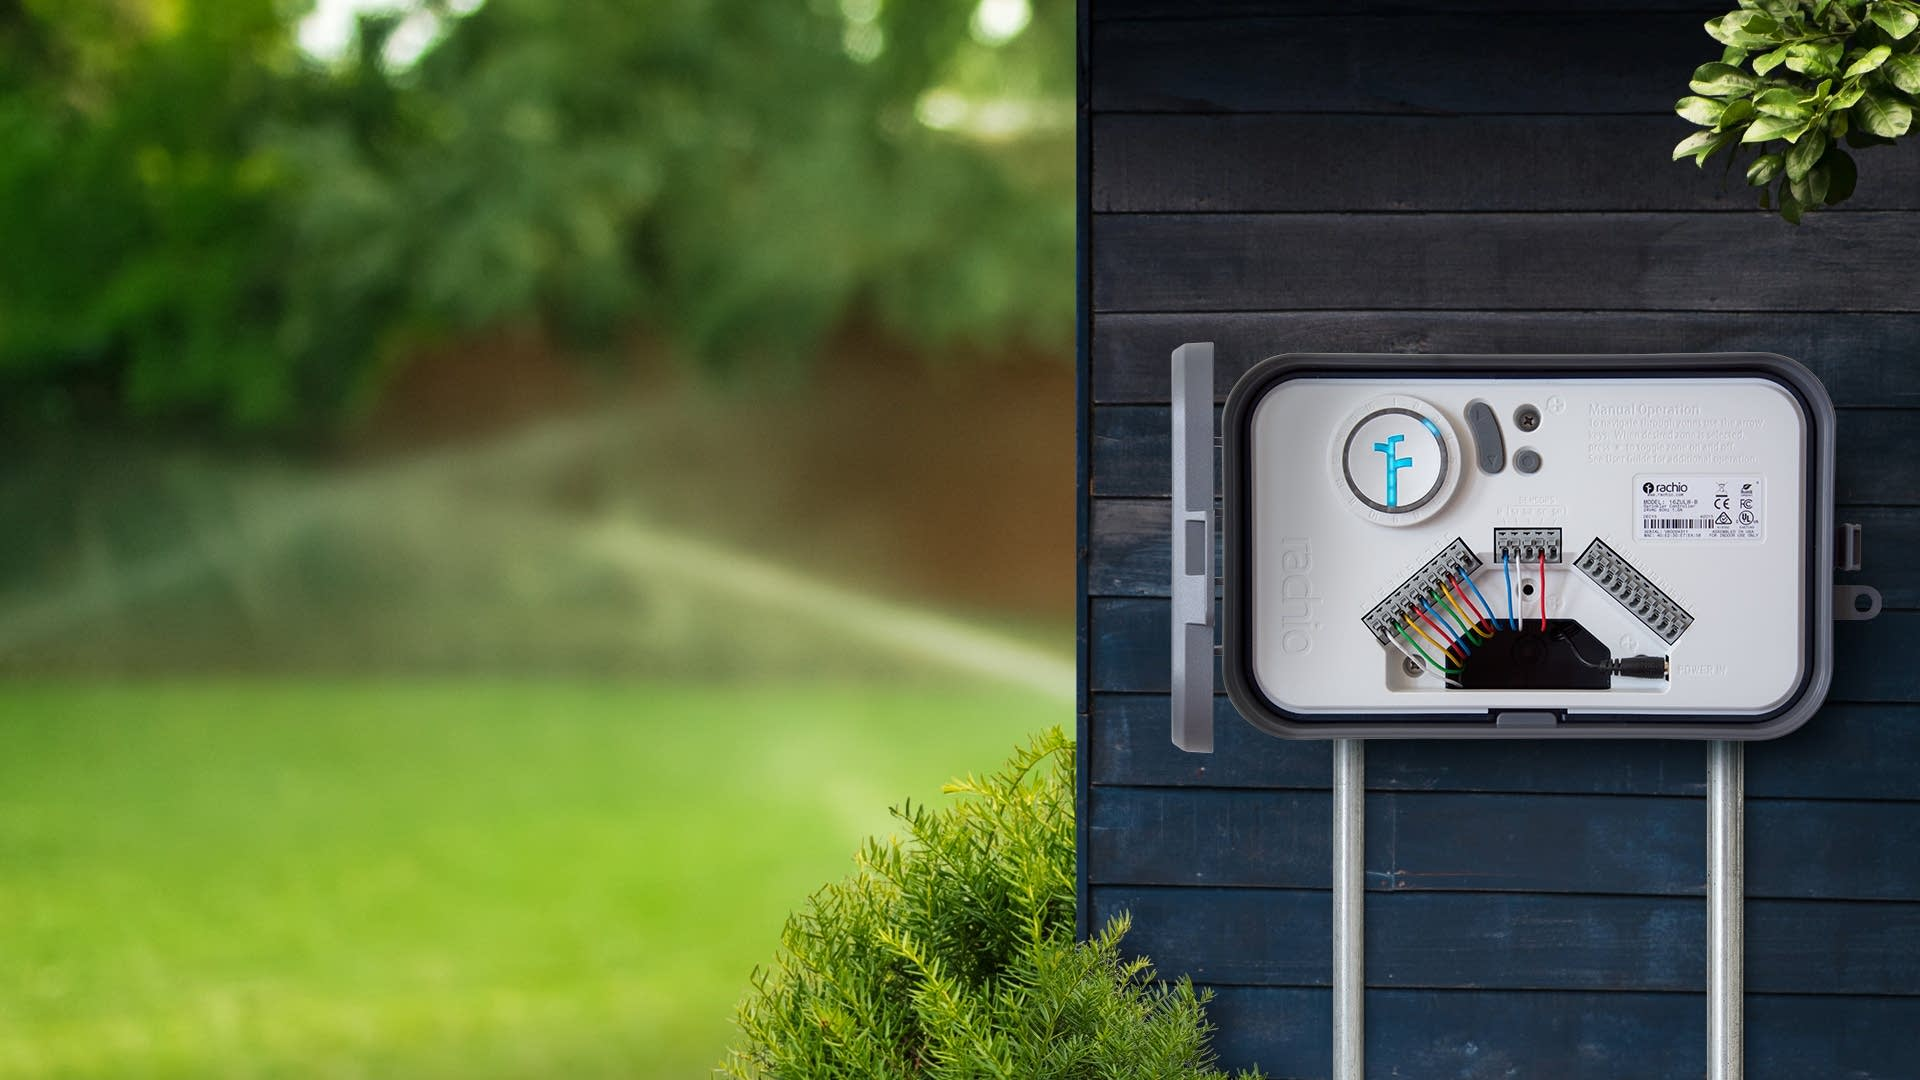 Rachio controllers can help conserve water in home sprinkler systems.